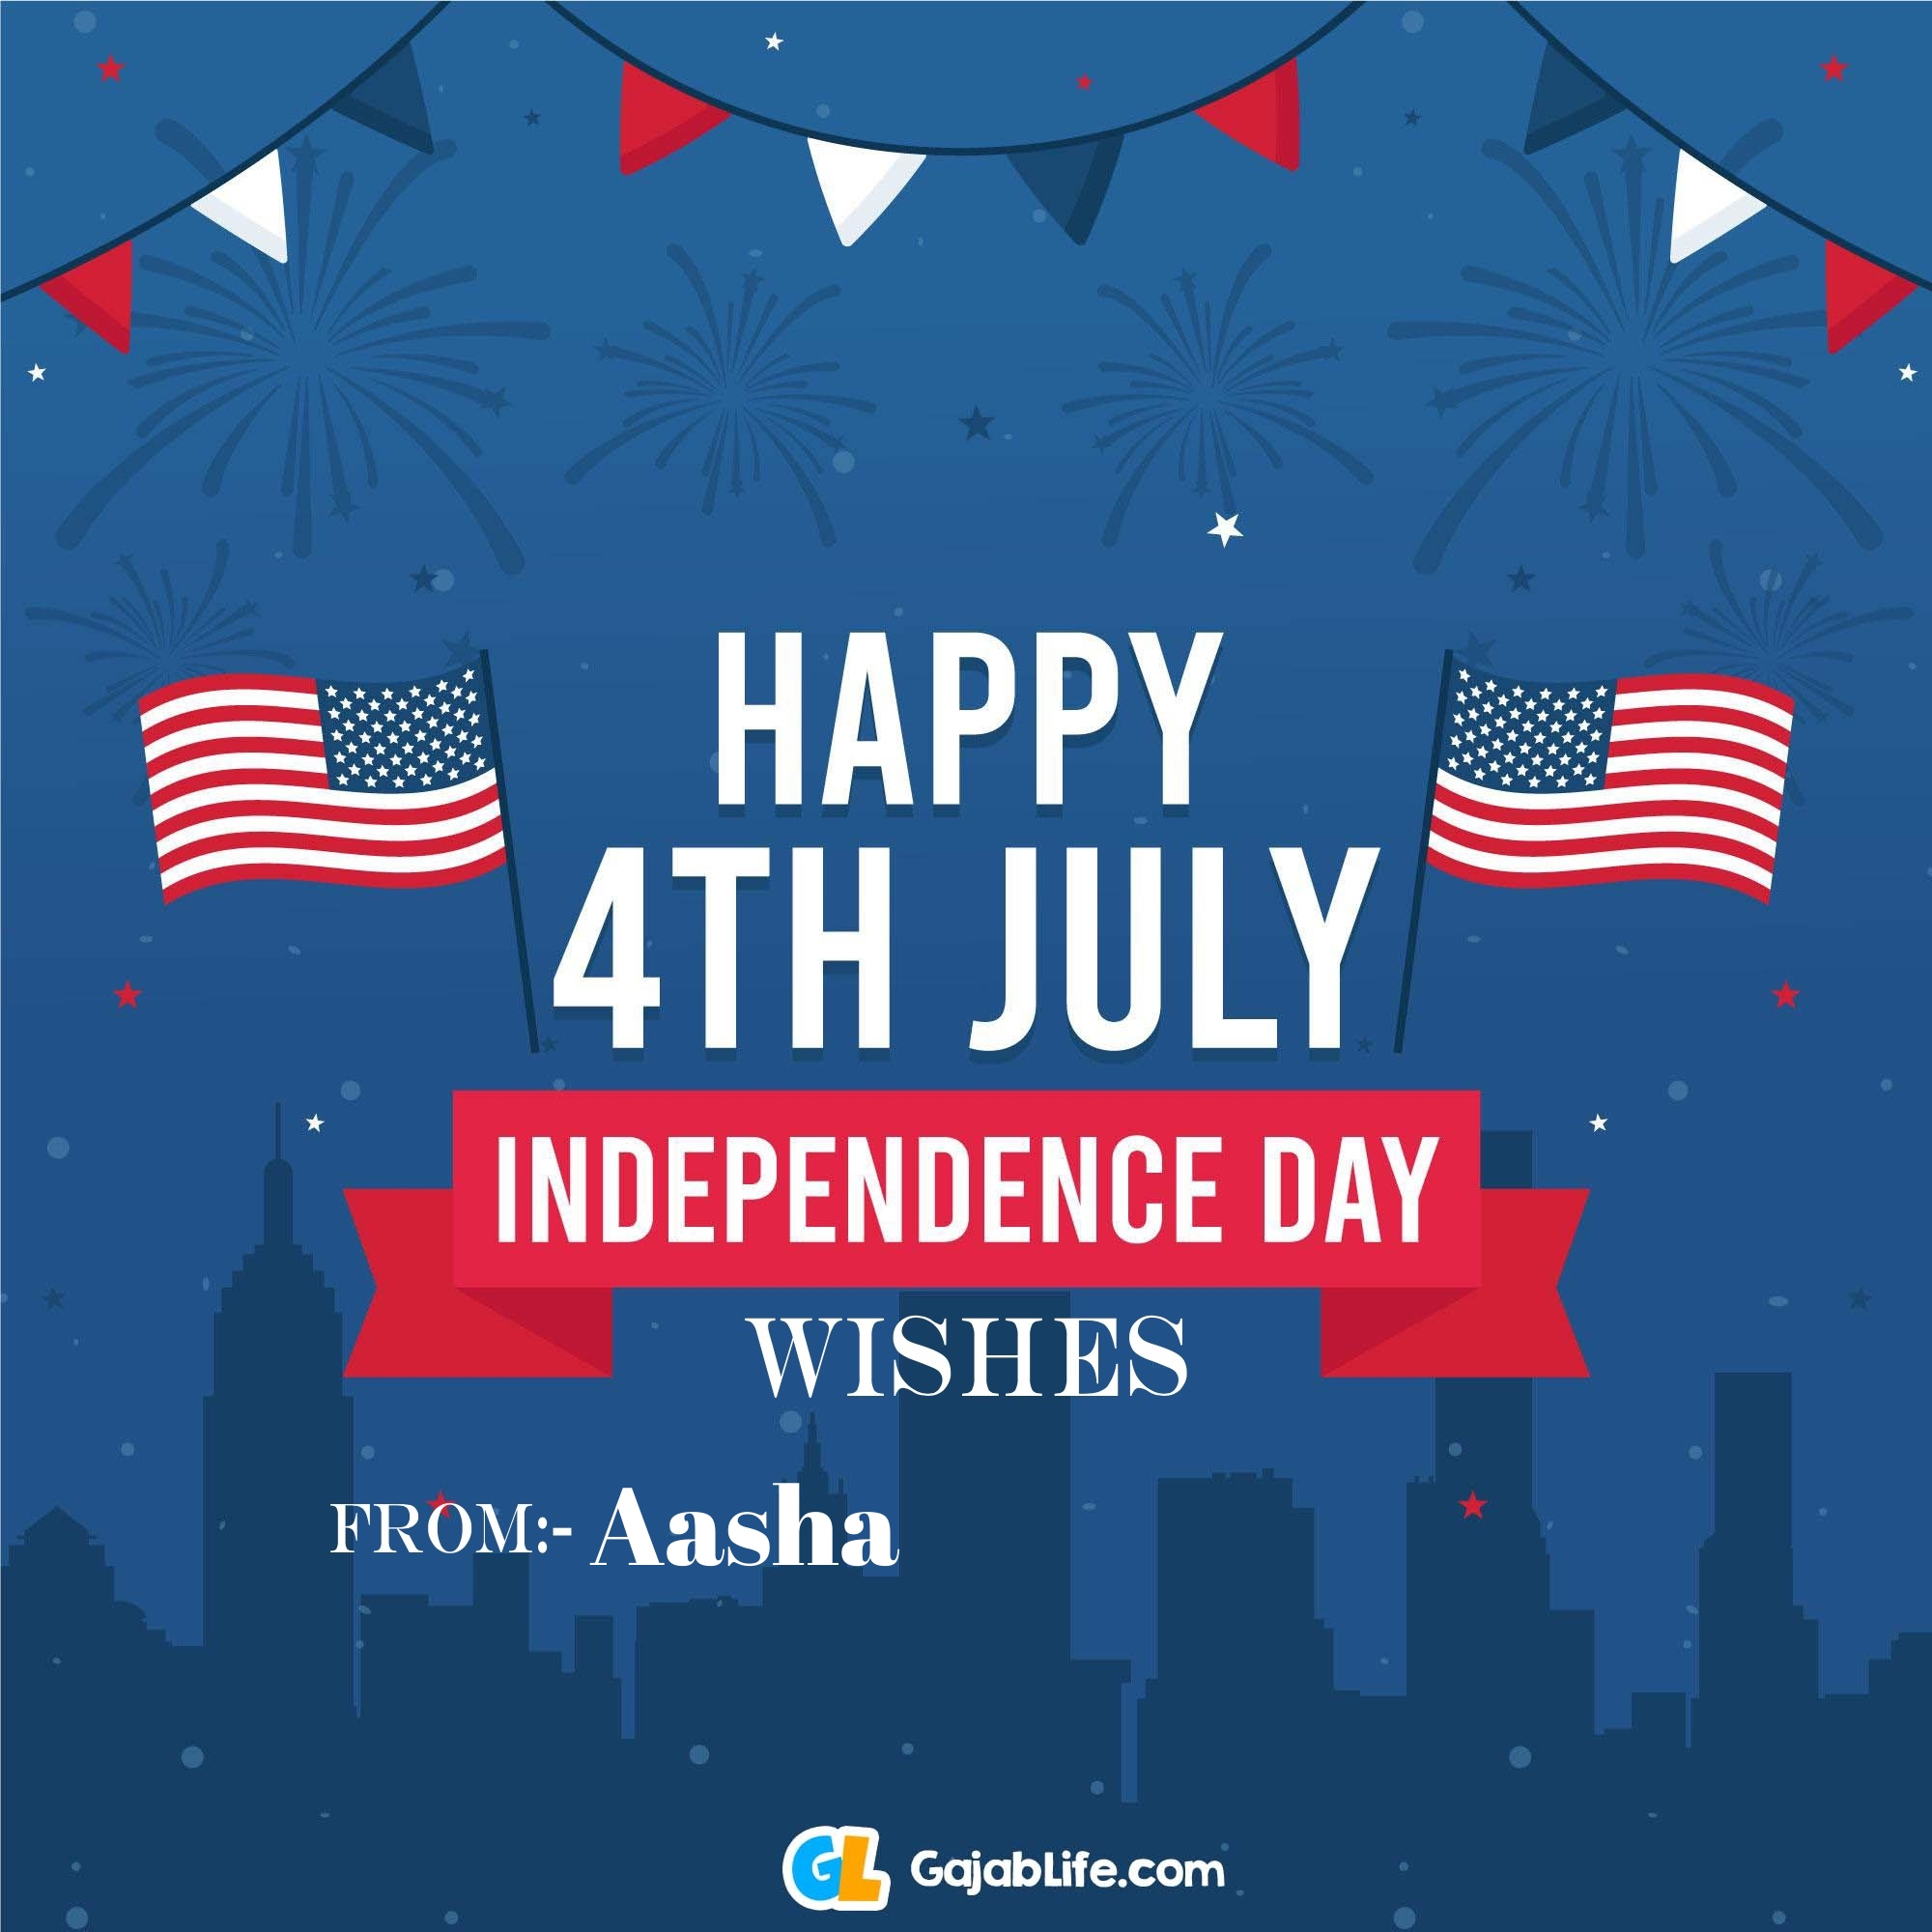 Aasha happy independence day united states of america images